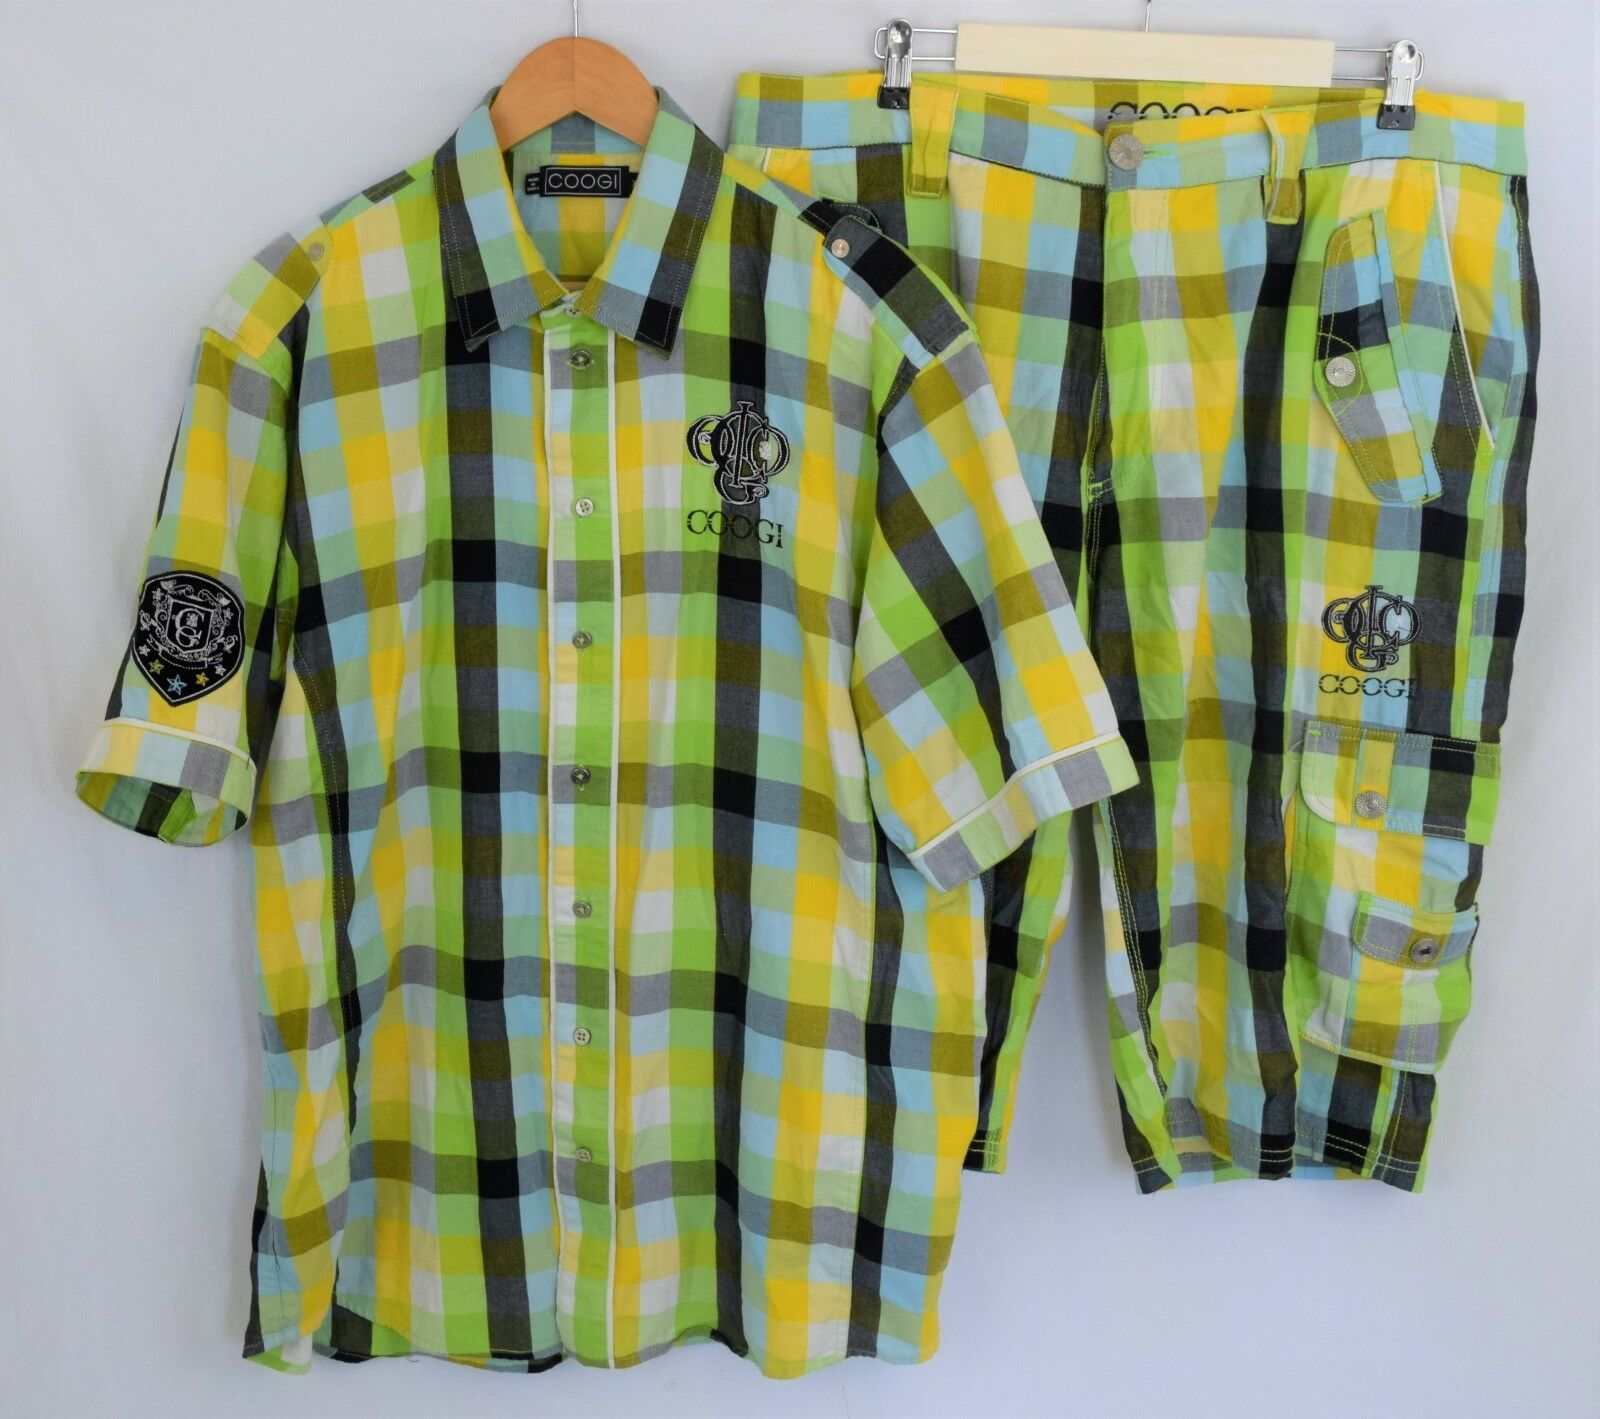 COOGI Outfit Authentic Men's XL Button up & Size 38 Shorts Set